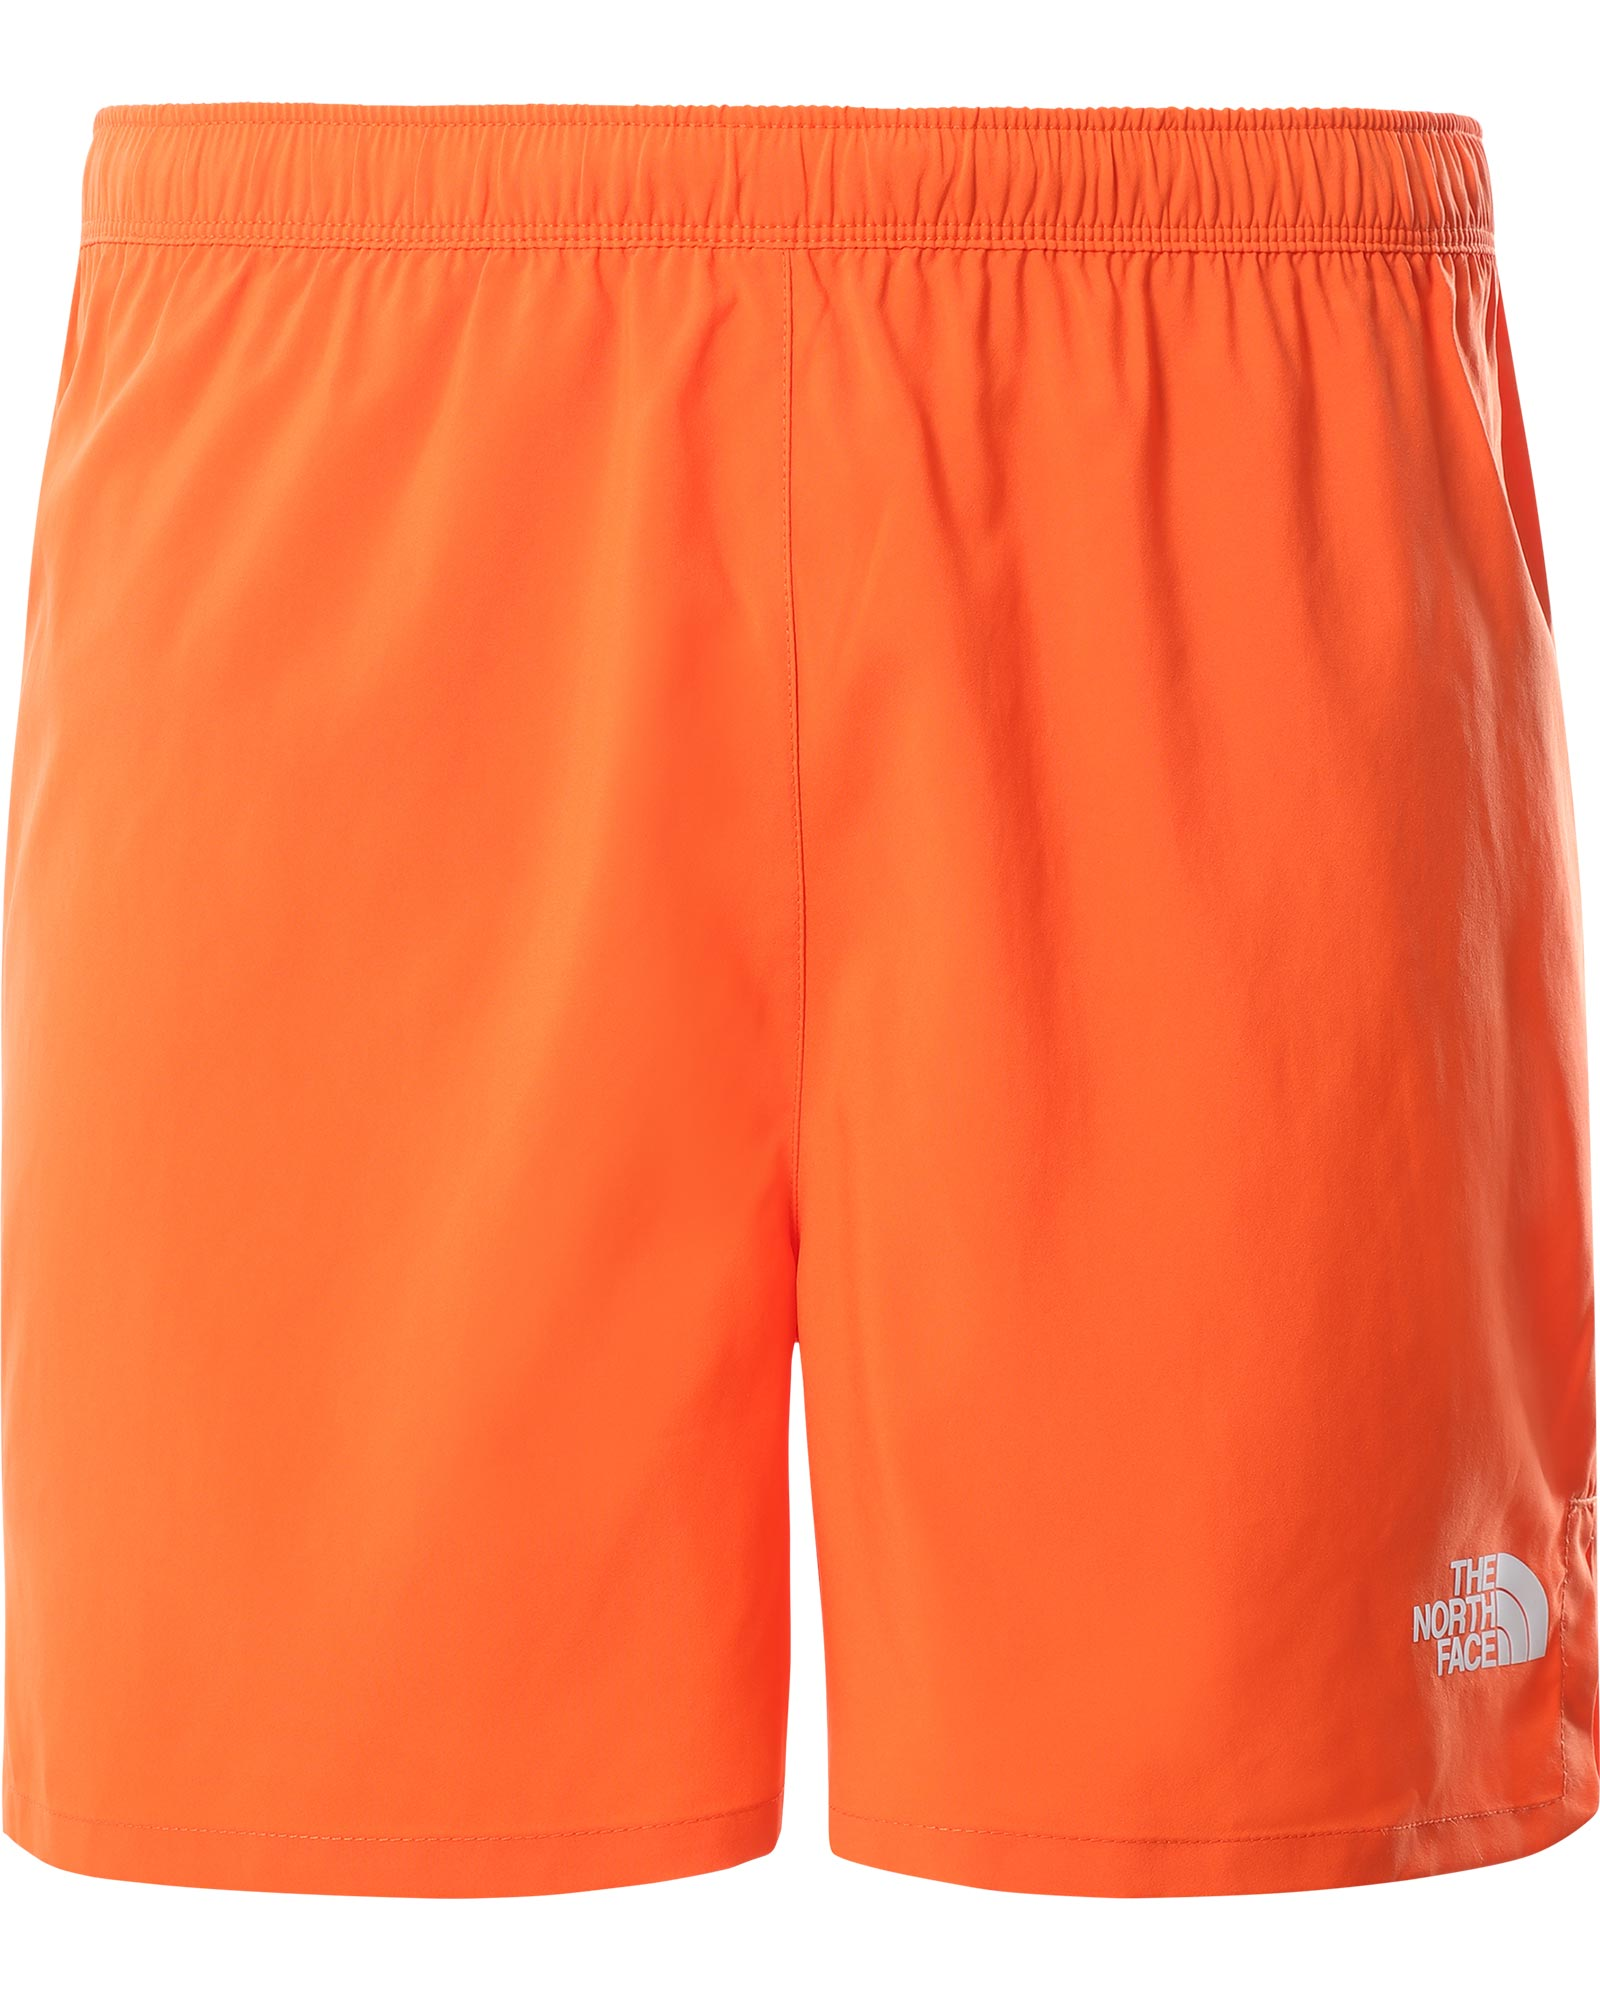 The North Face Men's Movmynt Shorts 0